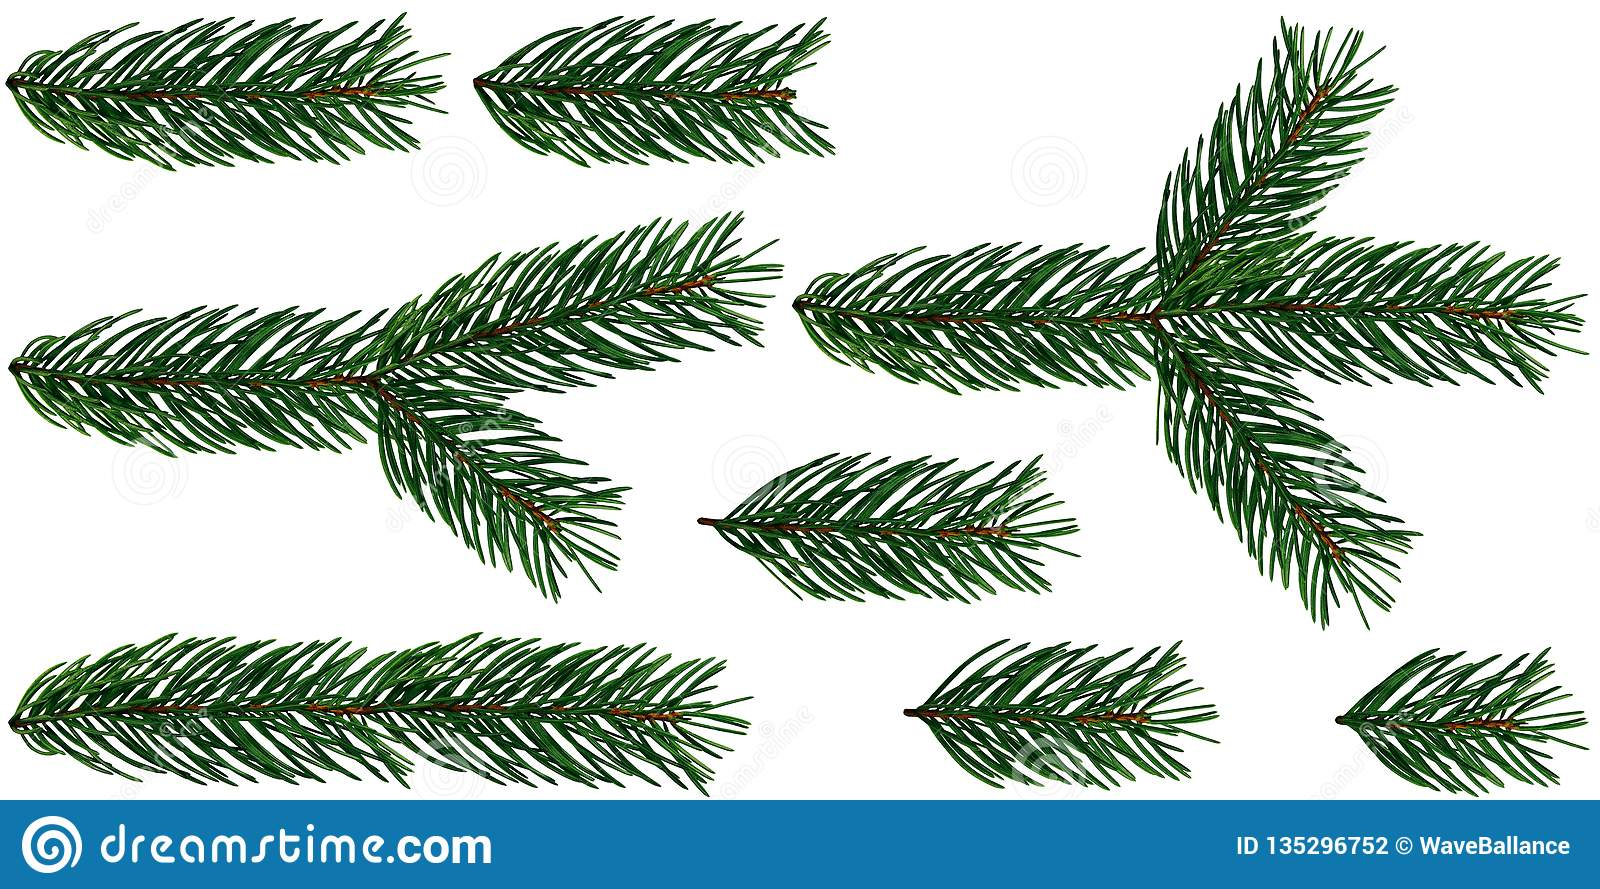 A Set Of 8 Elements Of Fir Tree Branches Christmas Tree Is Isolated.